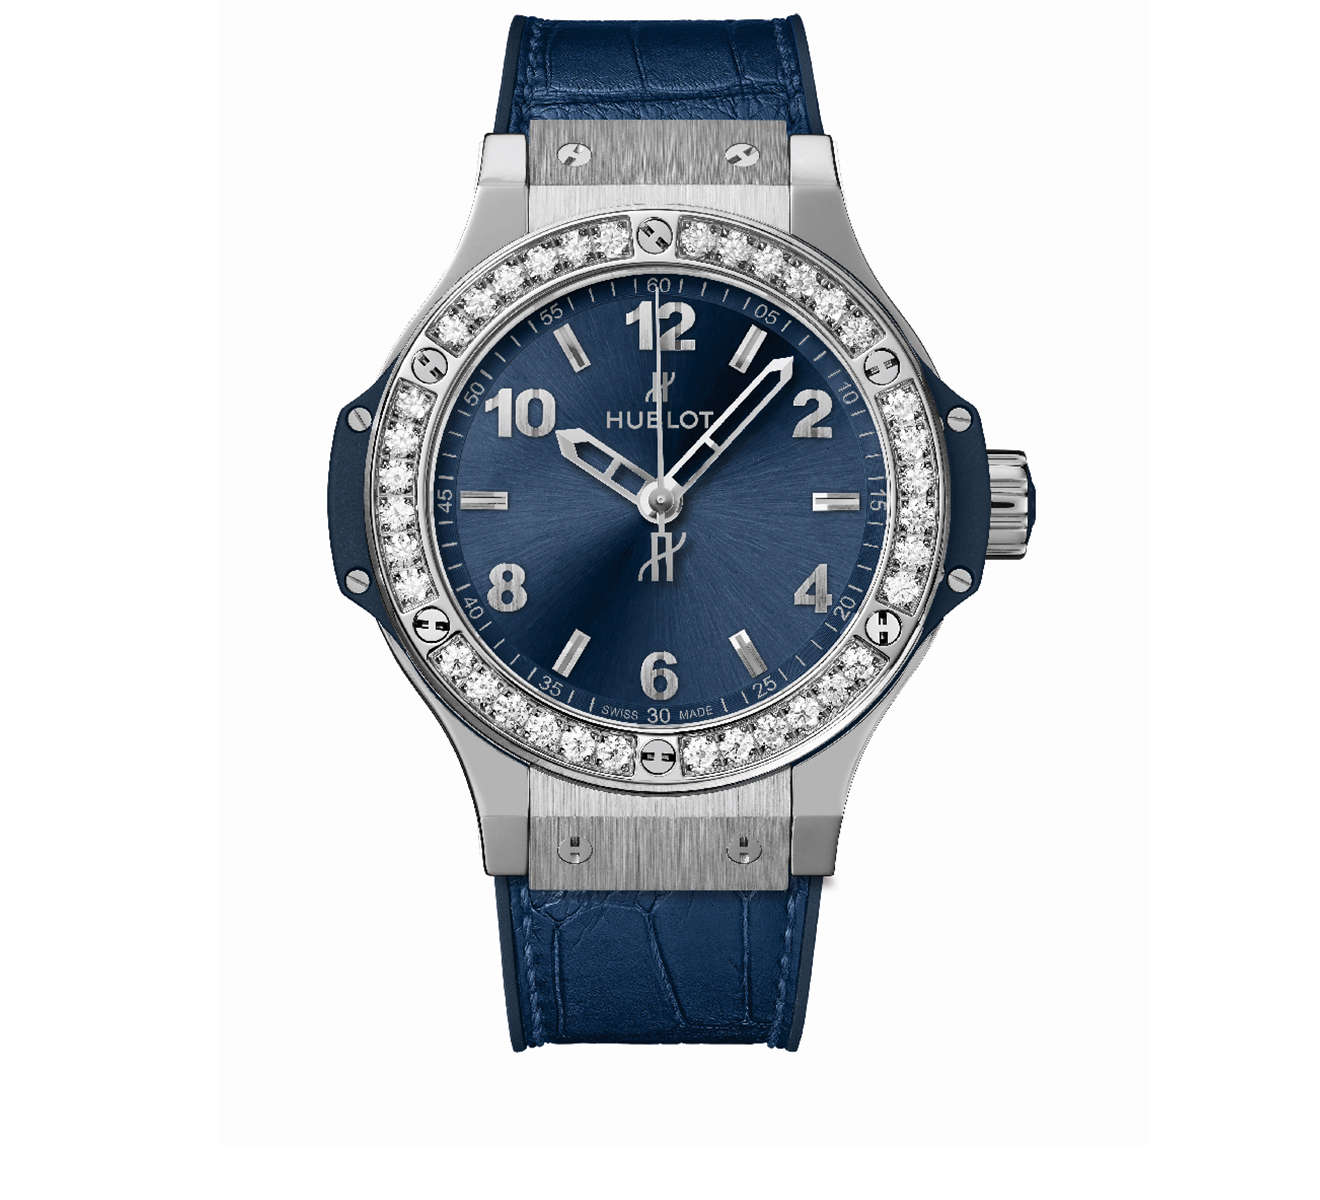 Часы Steel Blue Diamonds HUBLOT Big Bang 361.SX.7170.LR.1204 - фото 1 – Mercury